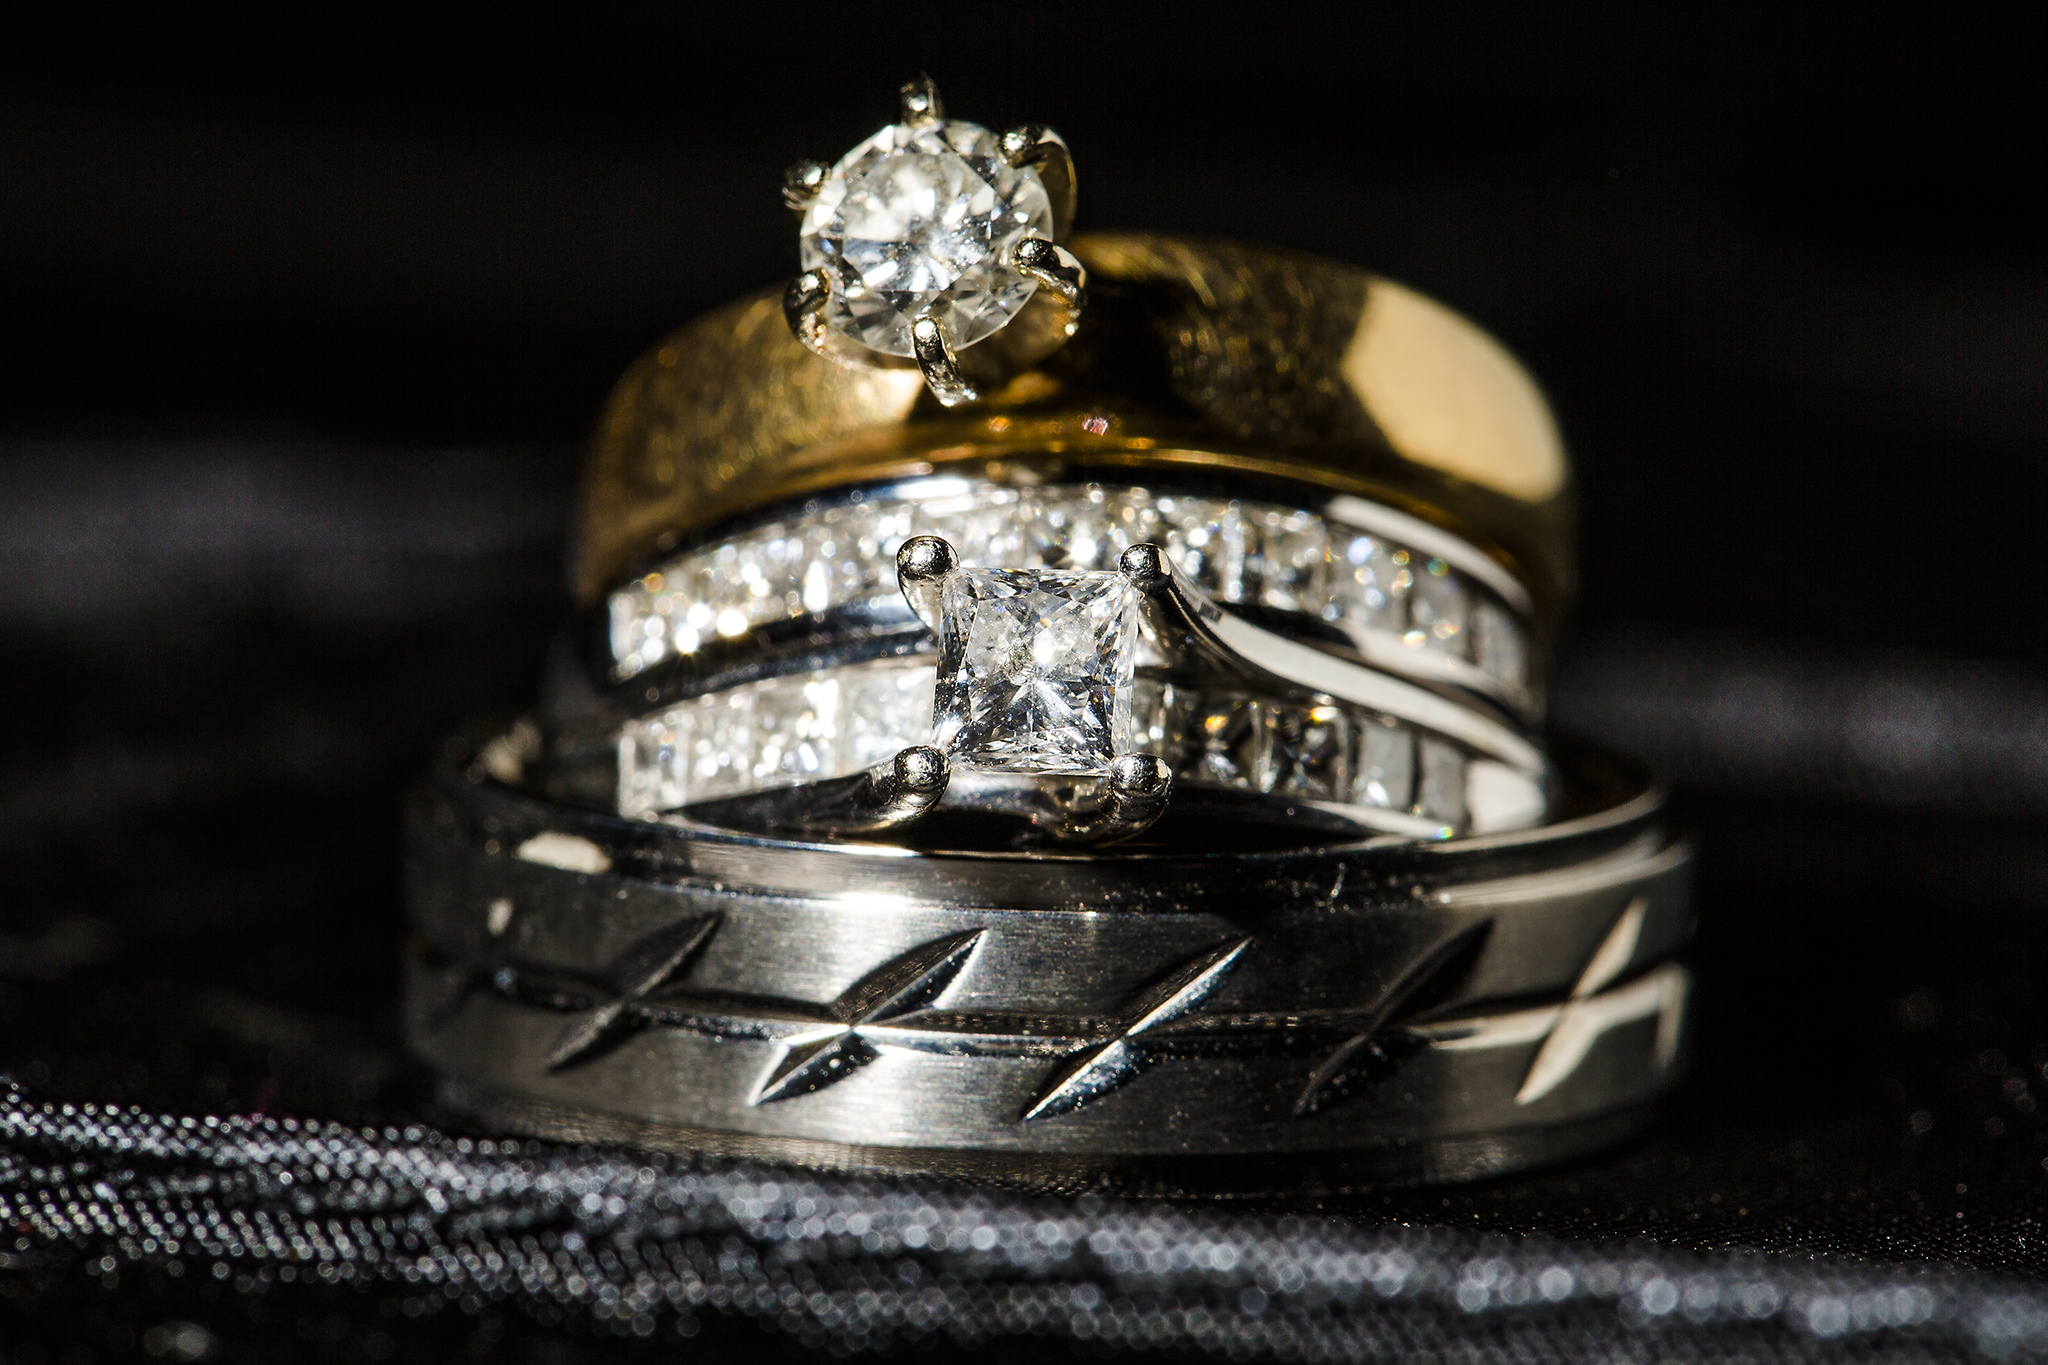 ring shot, wedding details, wedding bands, macro photography